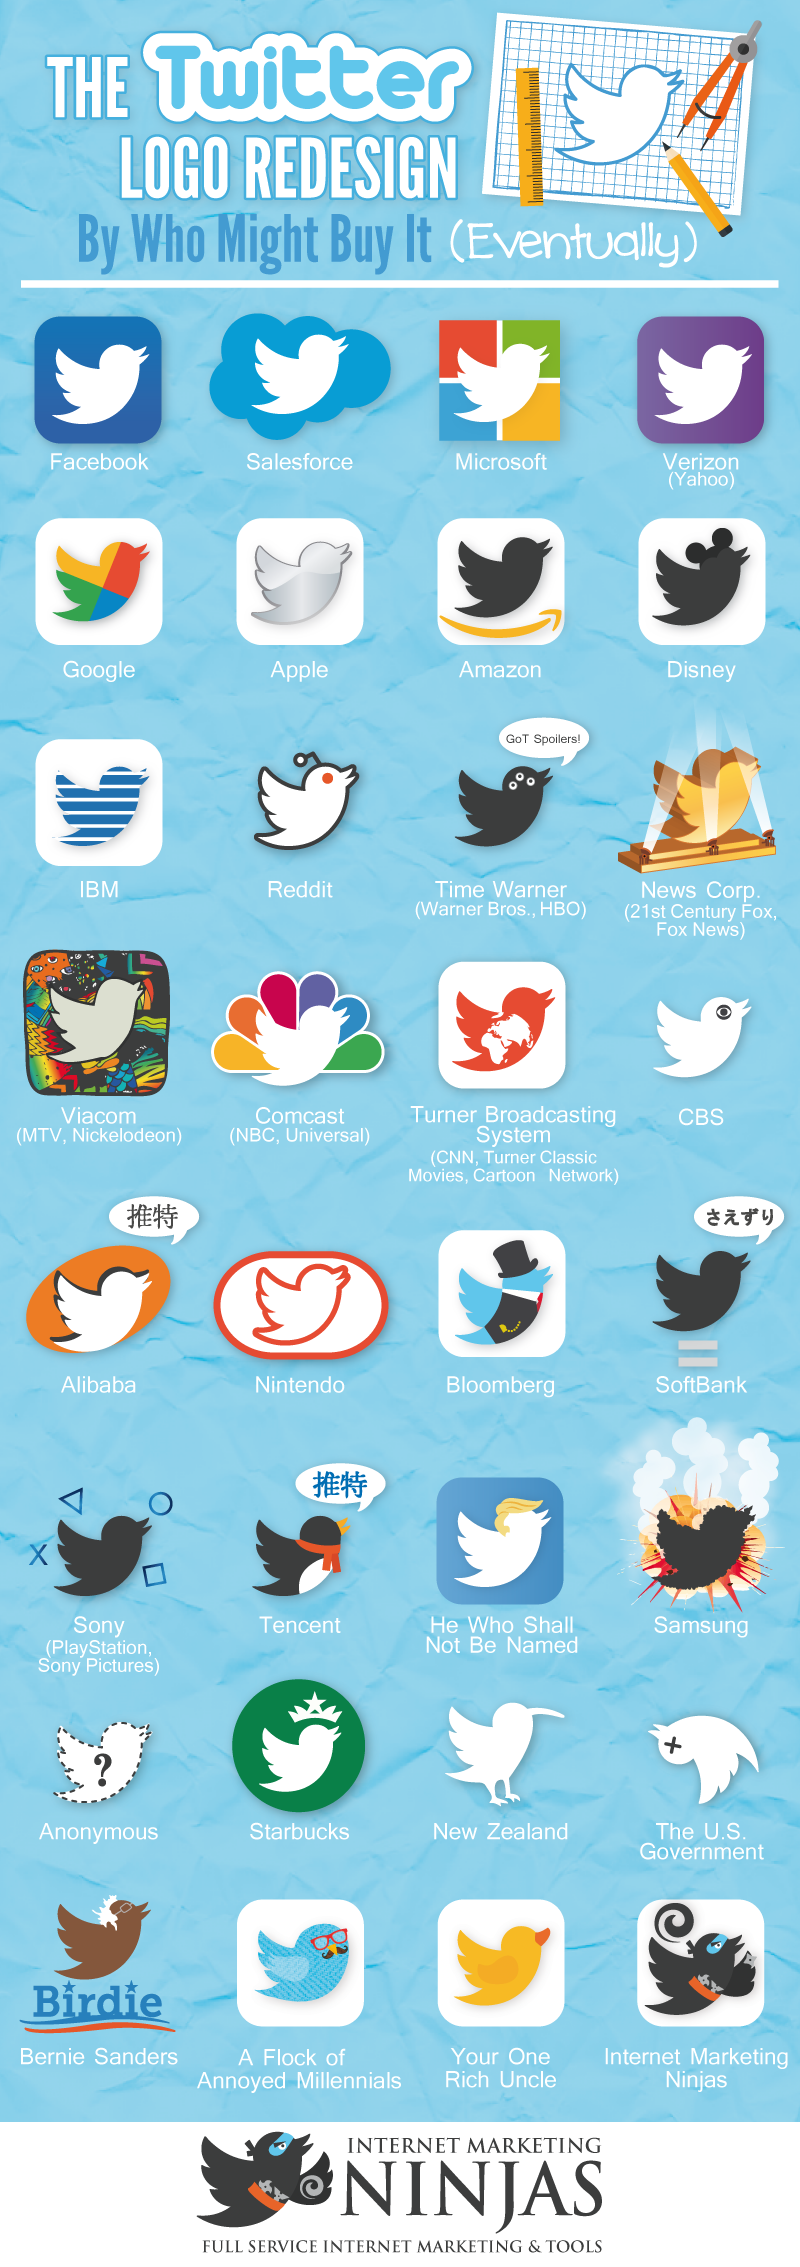 The Twitter Logo Redesign By Who Might Buy It (Eventually)